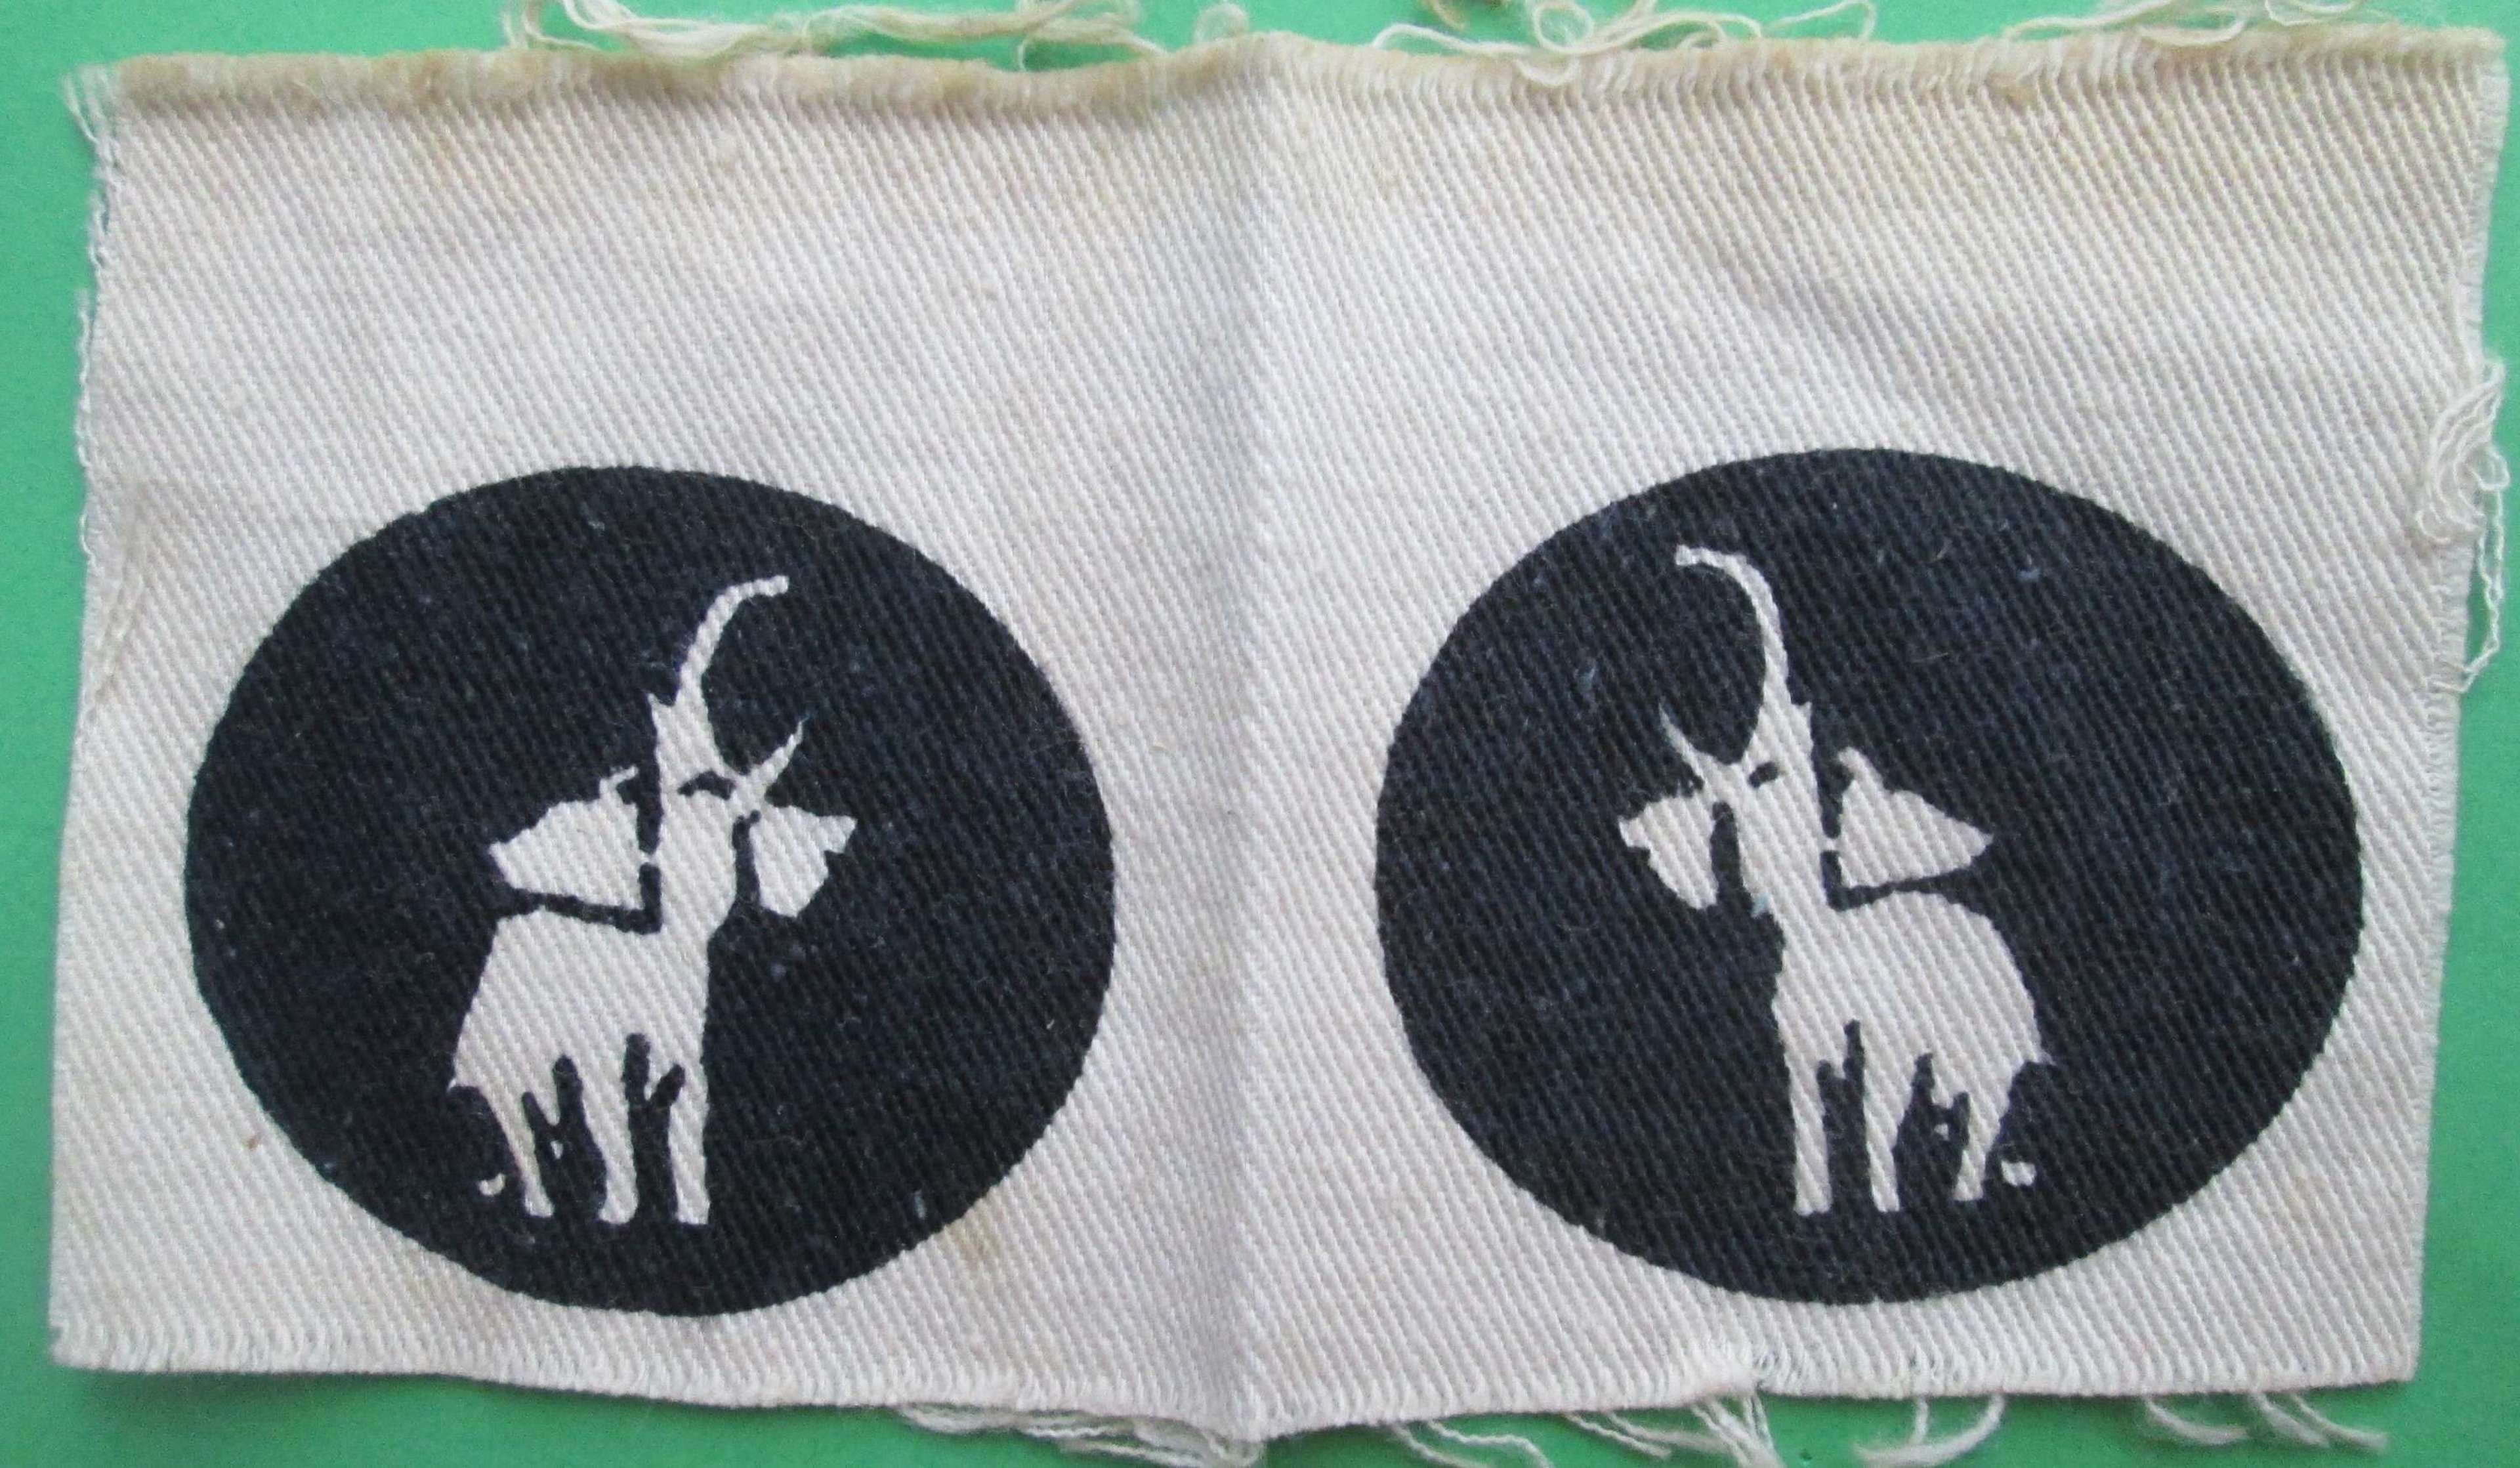 A PAIR OF RARE FORMATION SIGNS FOR THE 22 (EAST AFRICAN) BRIGADE